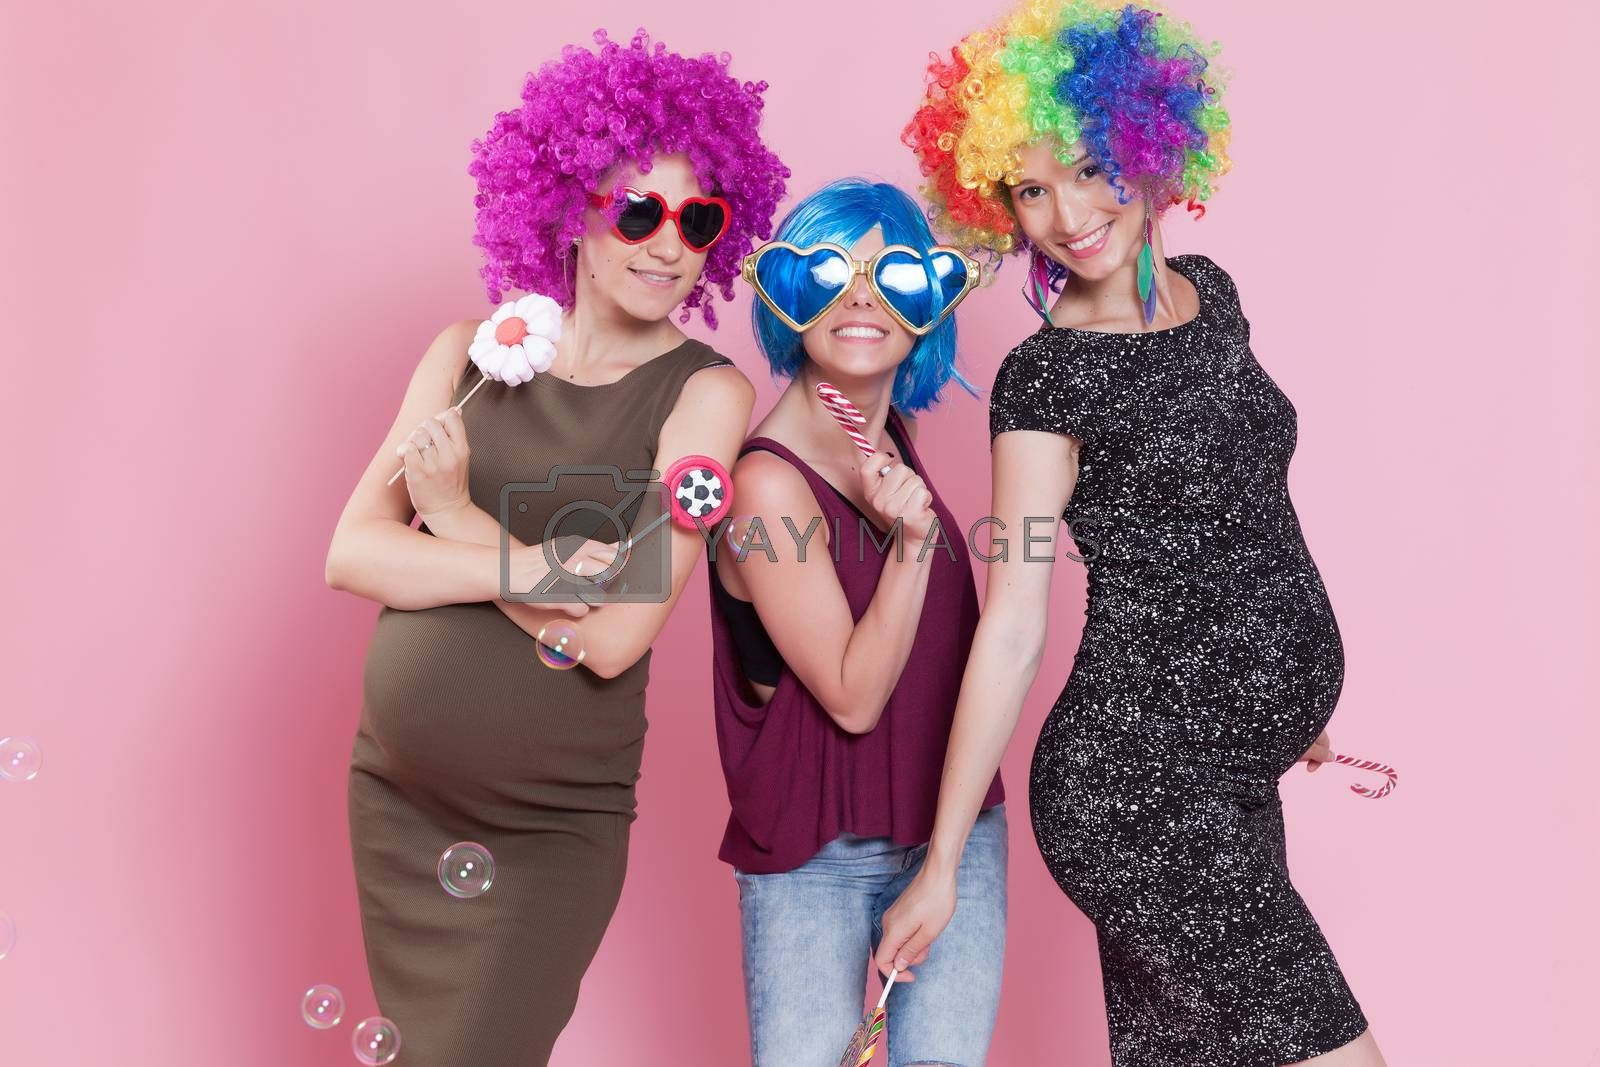 Group of young women disguised for a party, with candies, ballons and wigs.